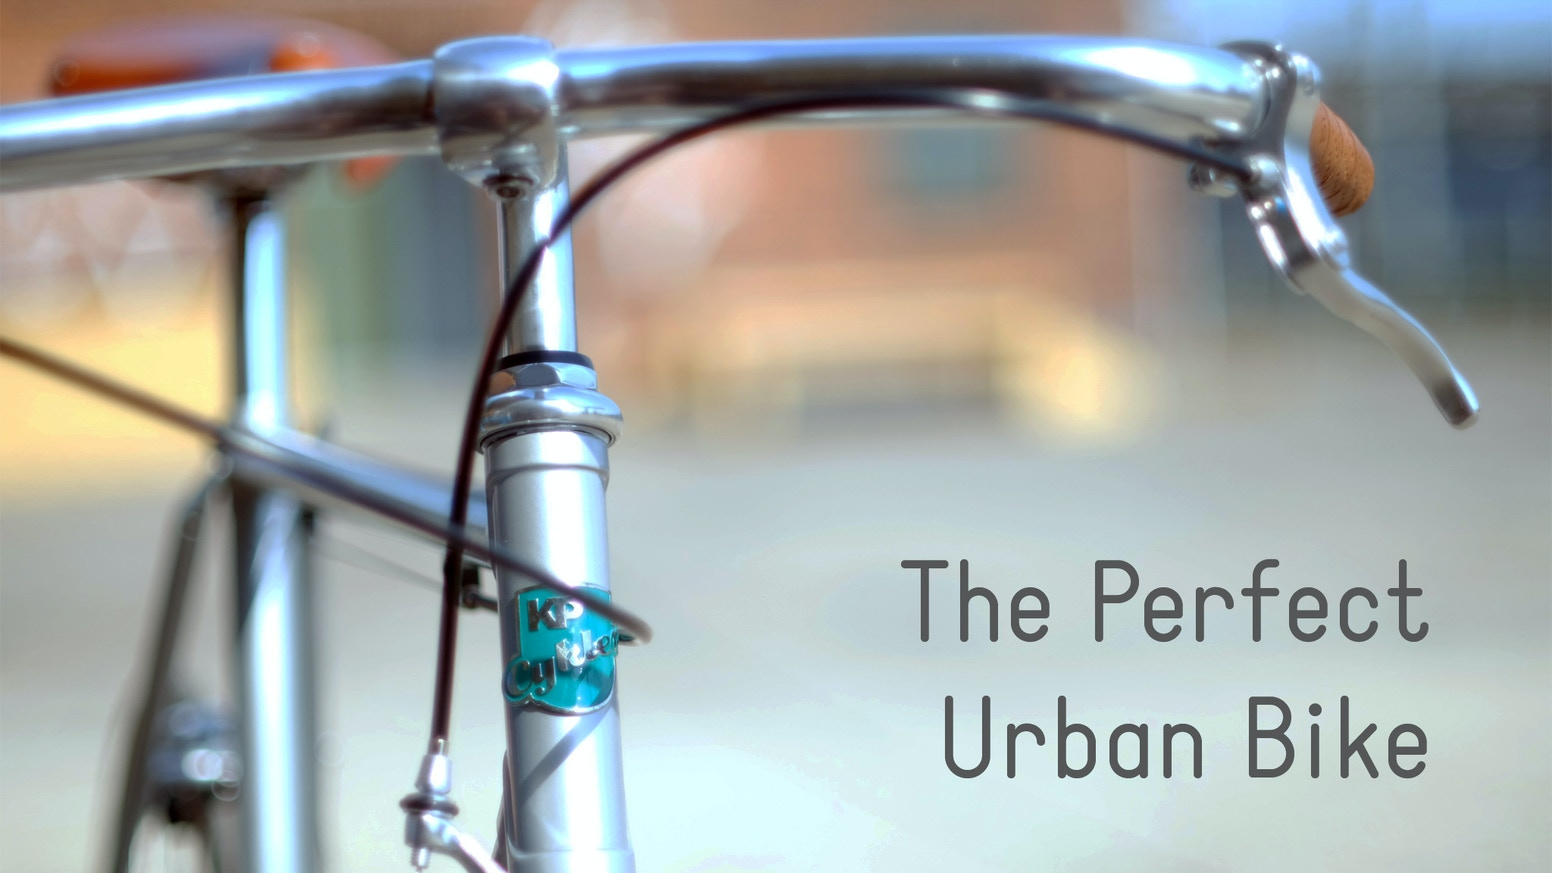 Over the past 2 years, we've designed The Perfect Urban Bike. Here it is - great to look at, fast, low-maintenance and personal.